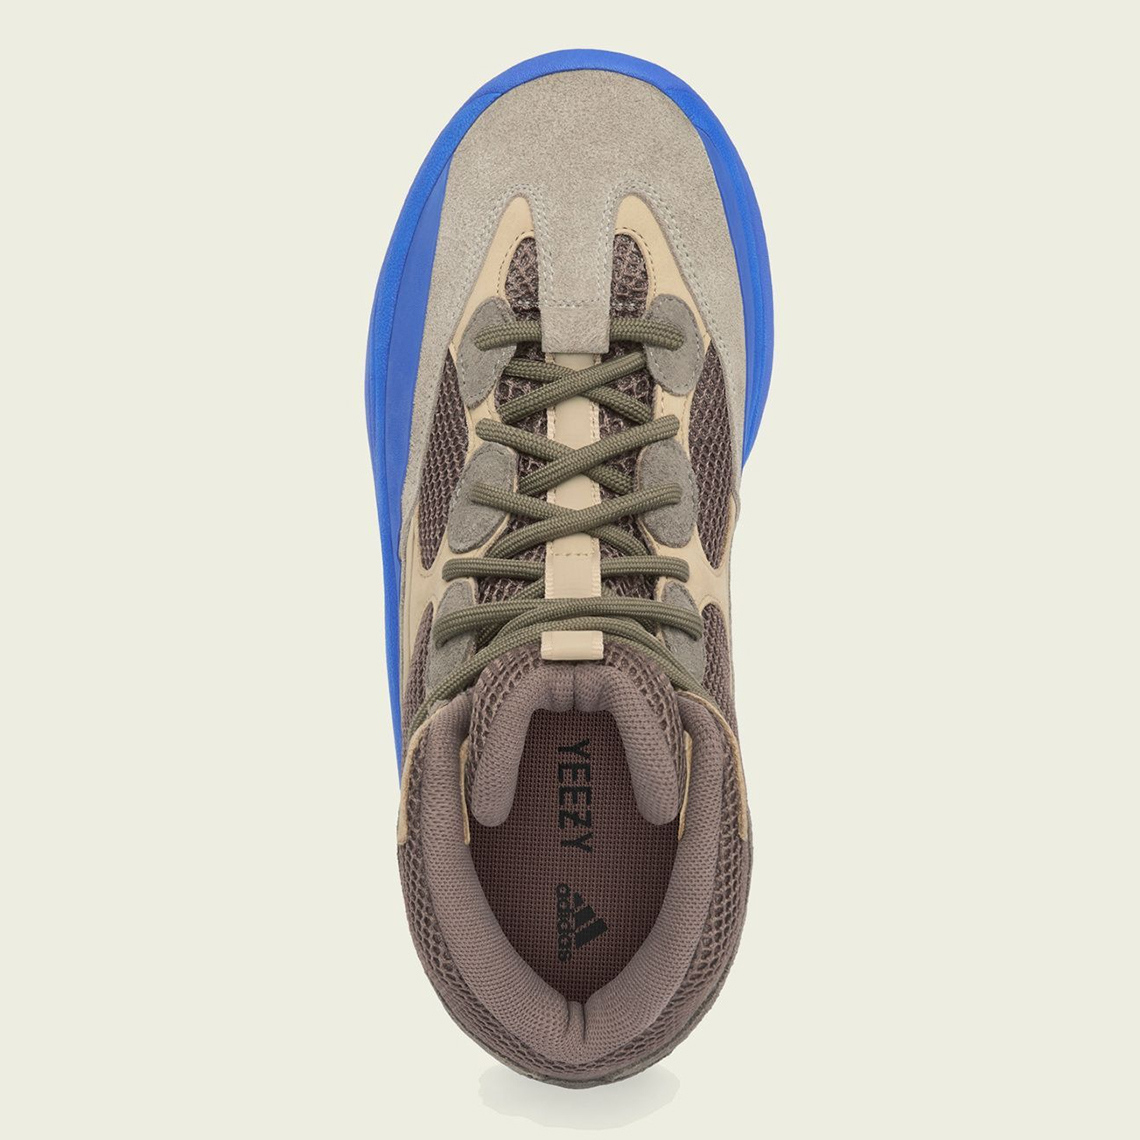 adidas-yeezy-desert-boot-taupe-blue-release-date-2